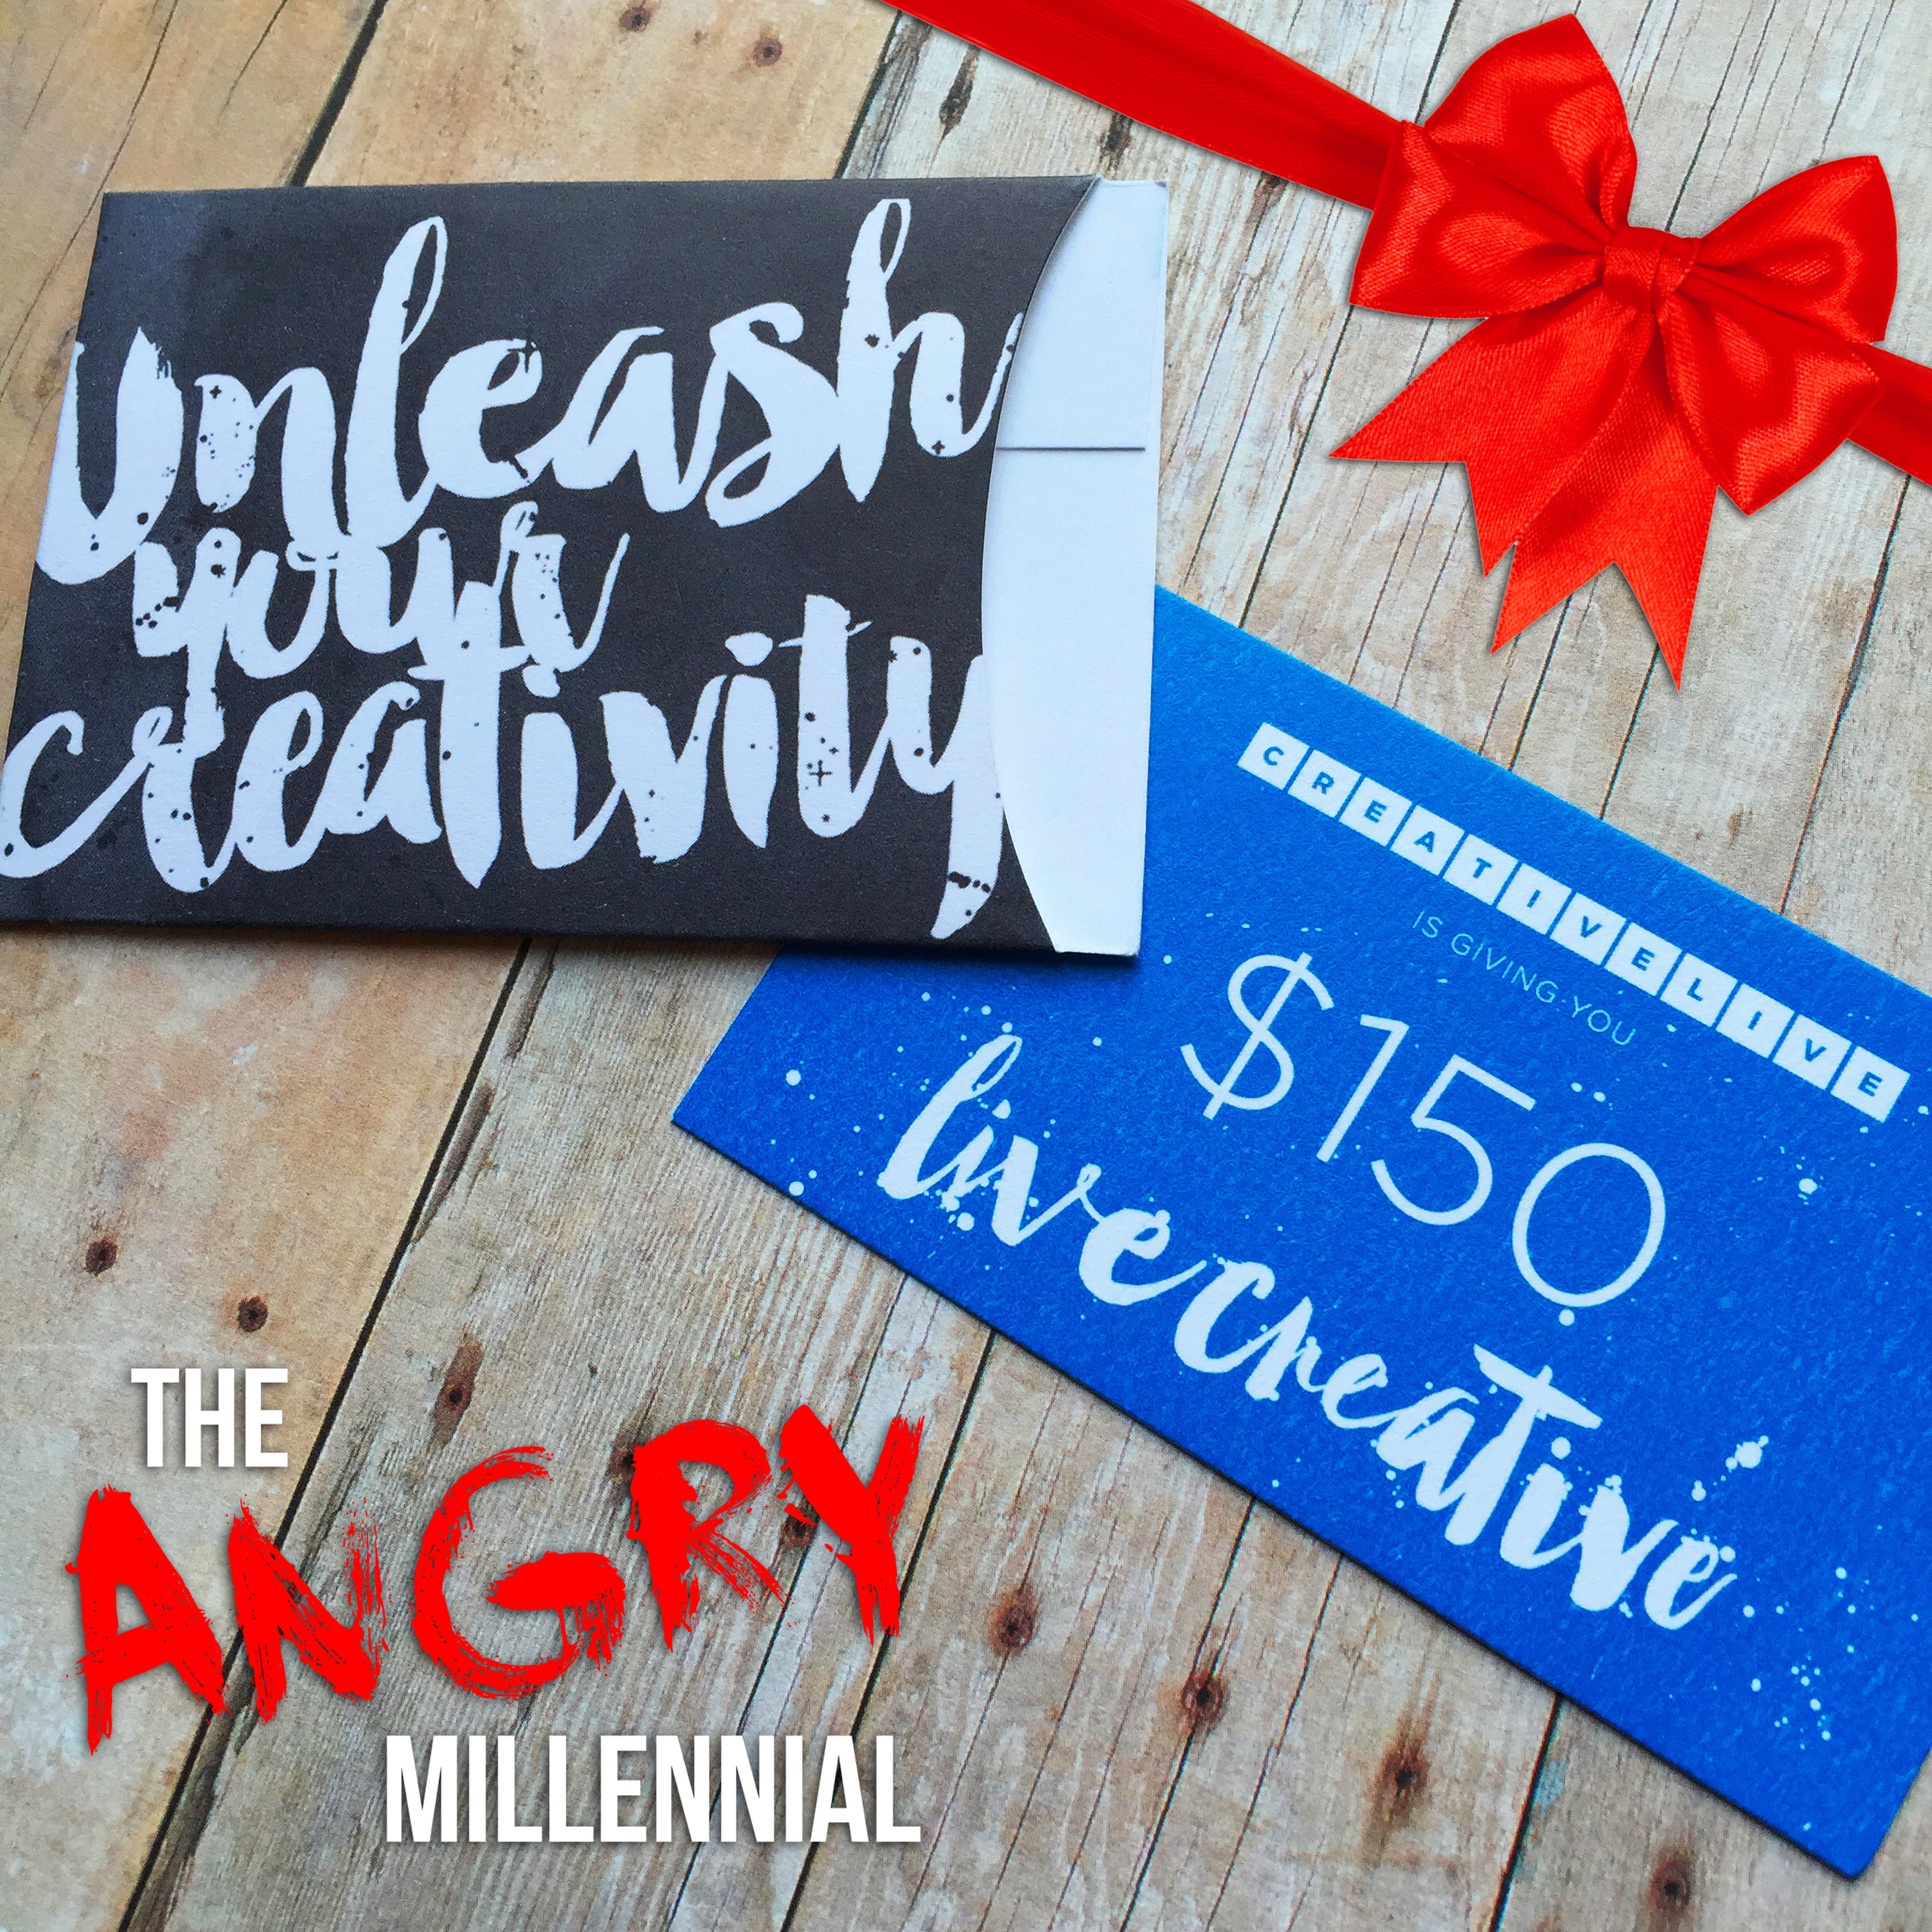 creativelive-giveaway.jpg